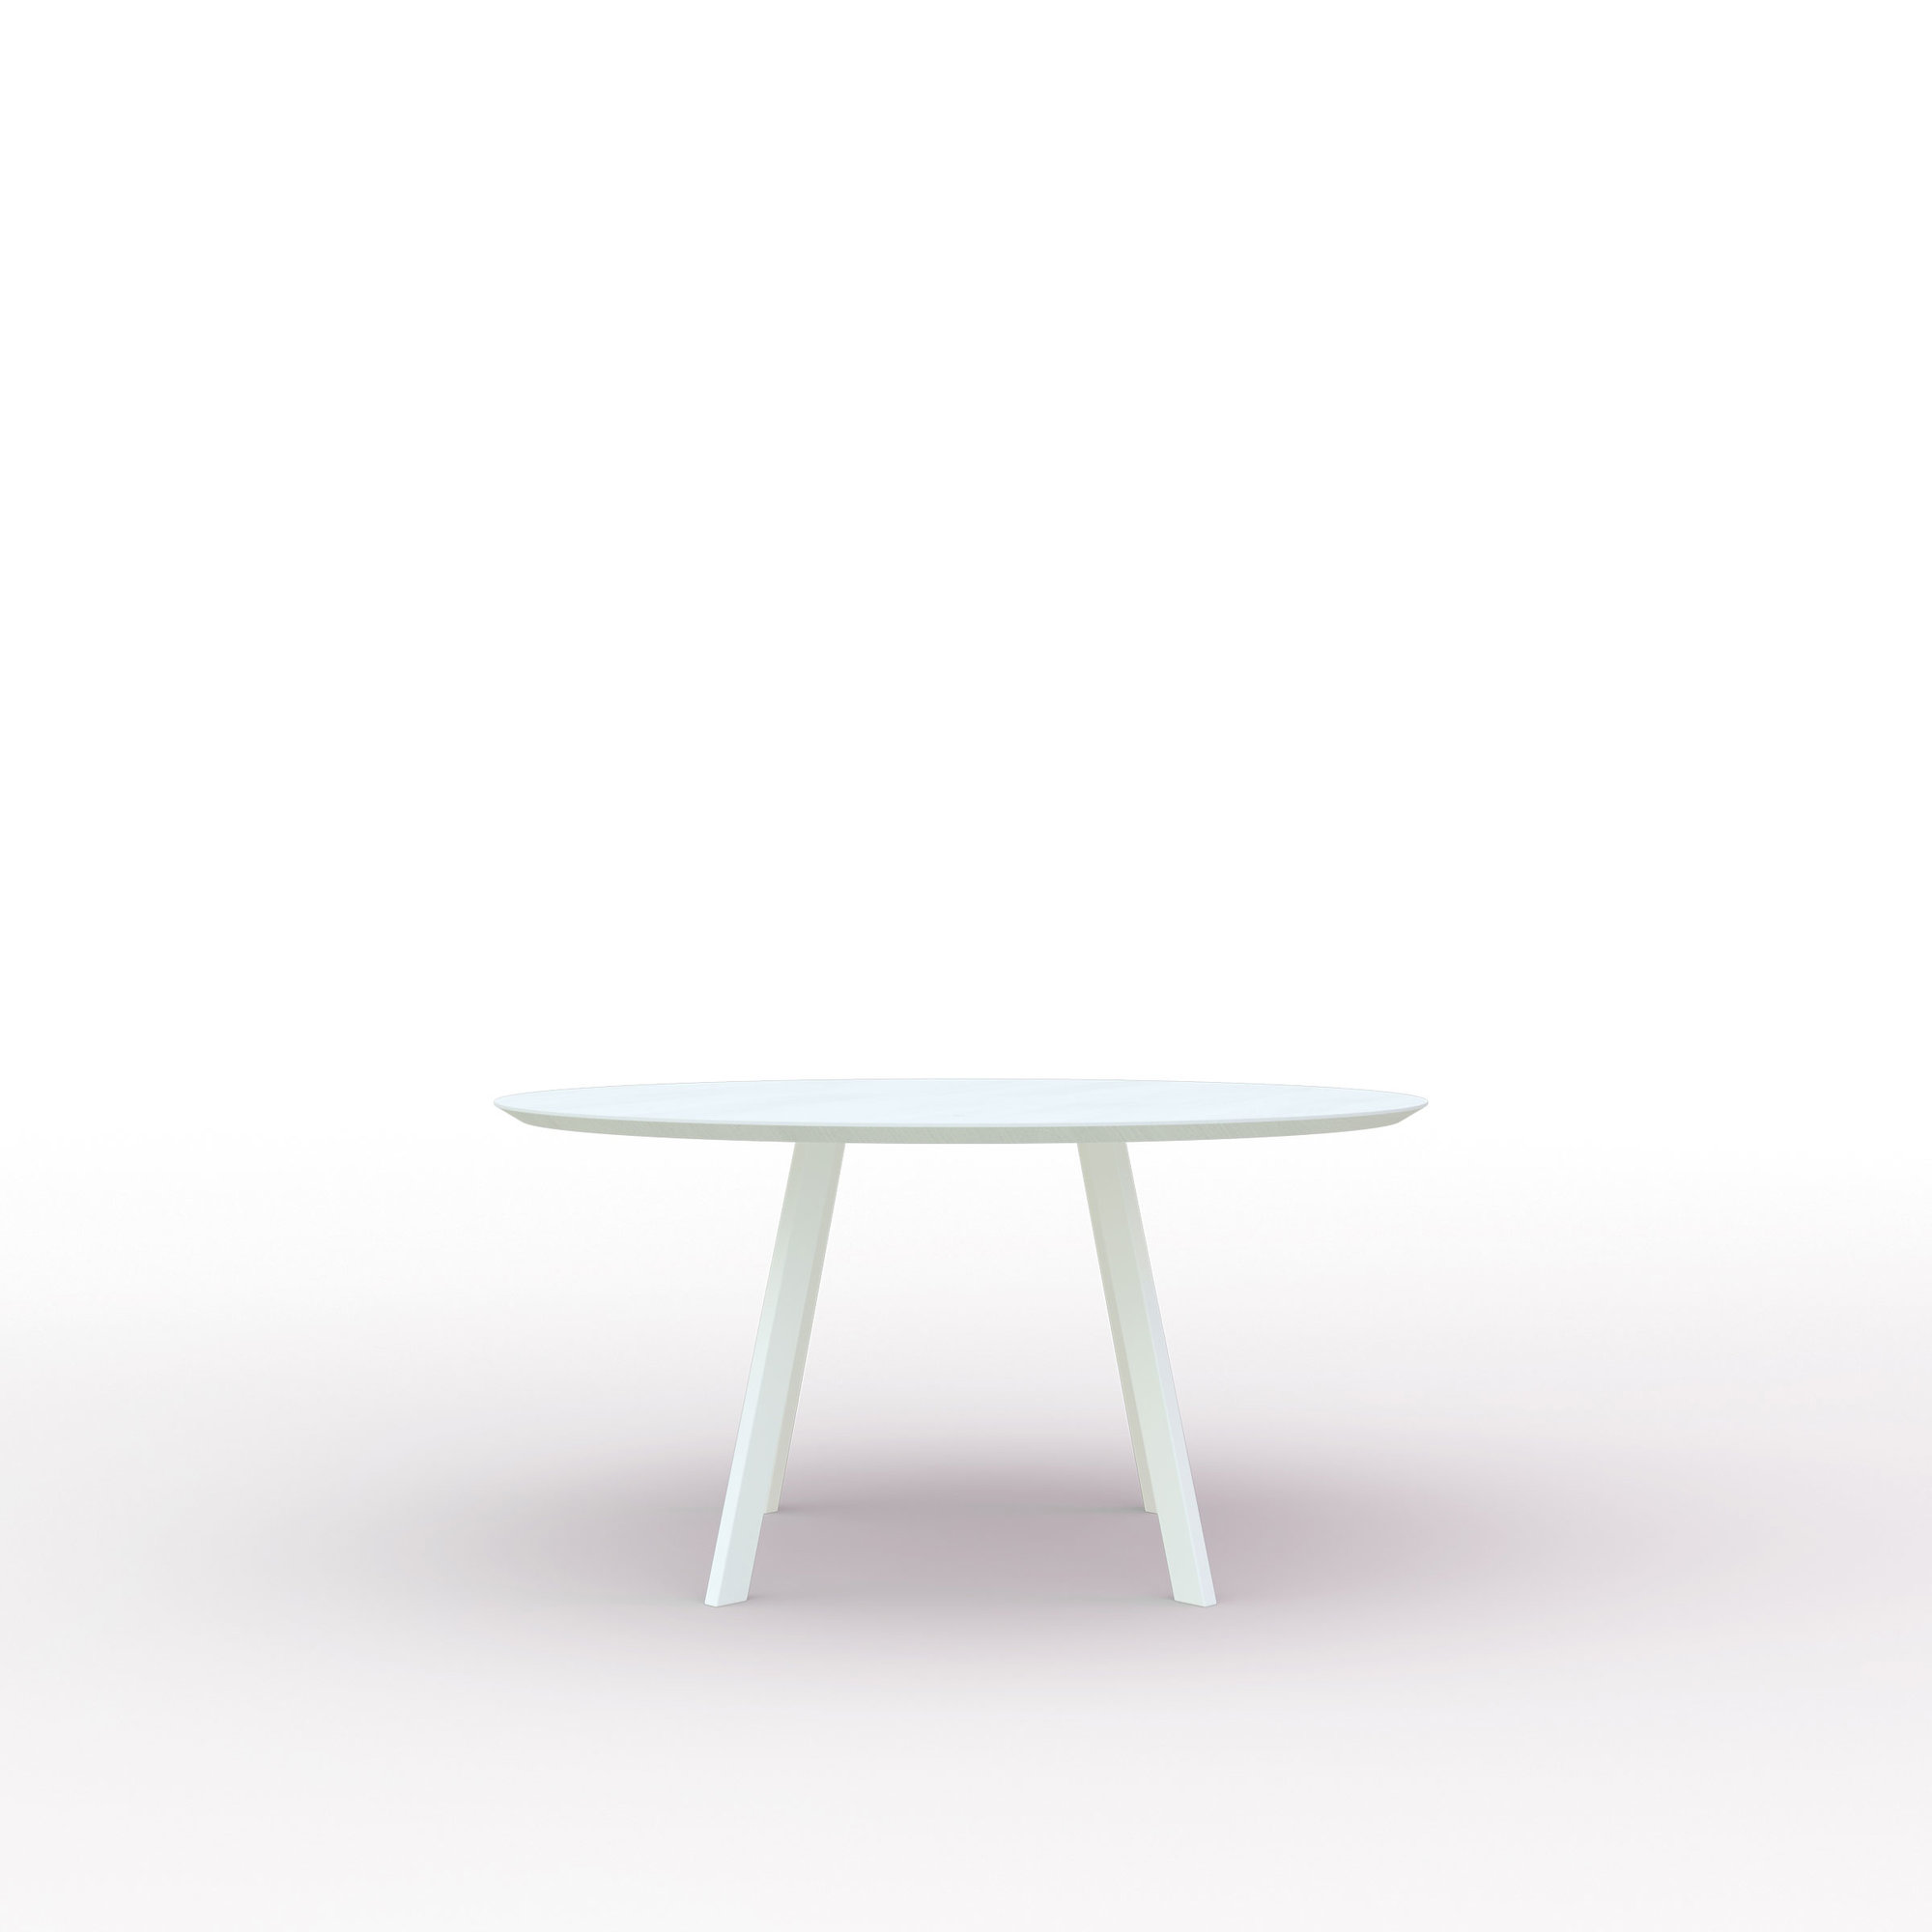 Ronde design tafel op maat | New Co Quadpod Steel white powdercoating | Oak white lacquer | Studio HENK | Cutout